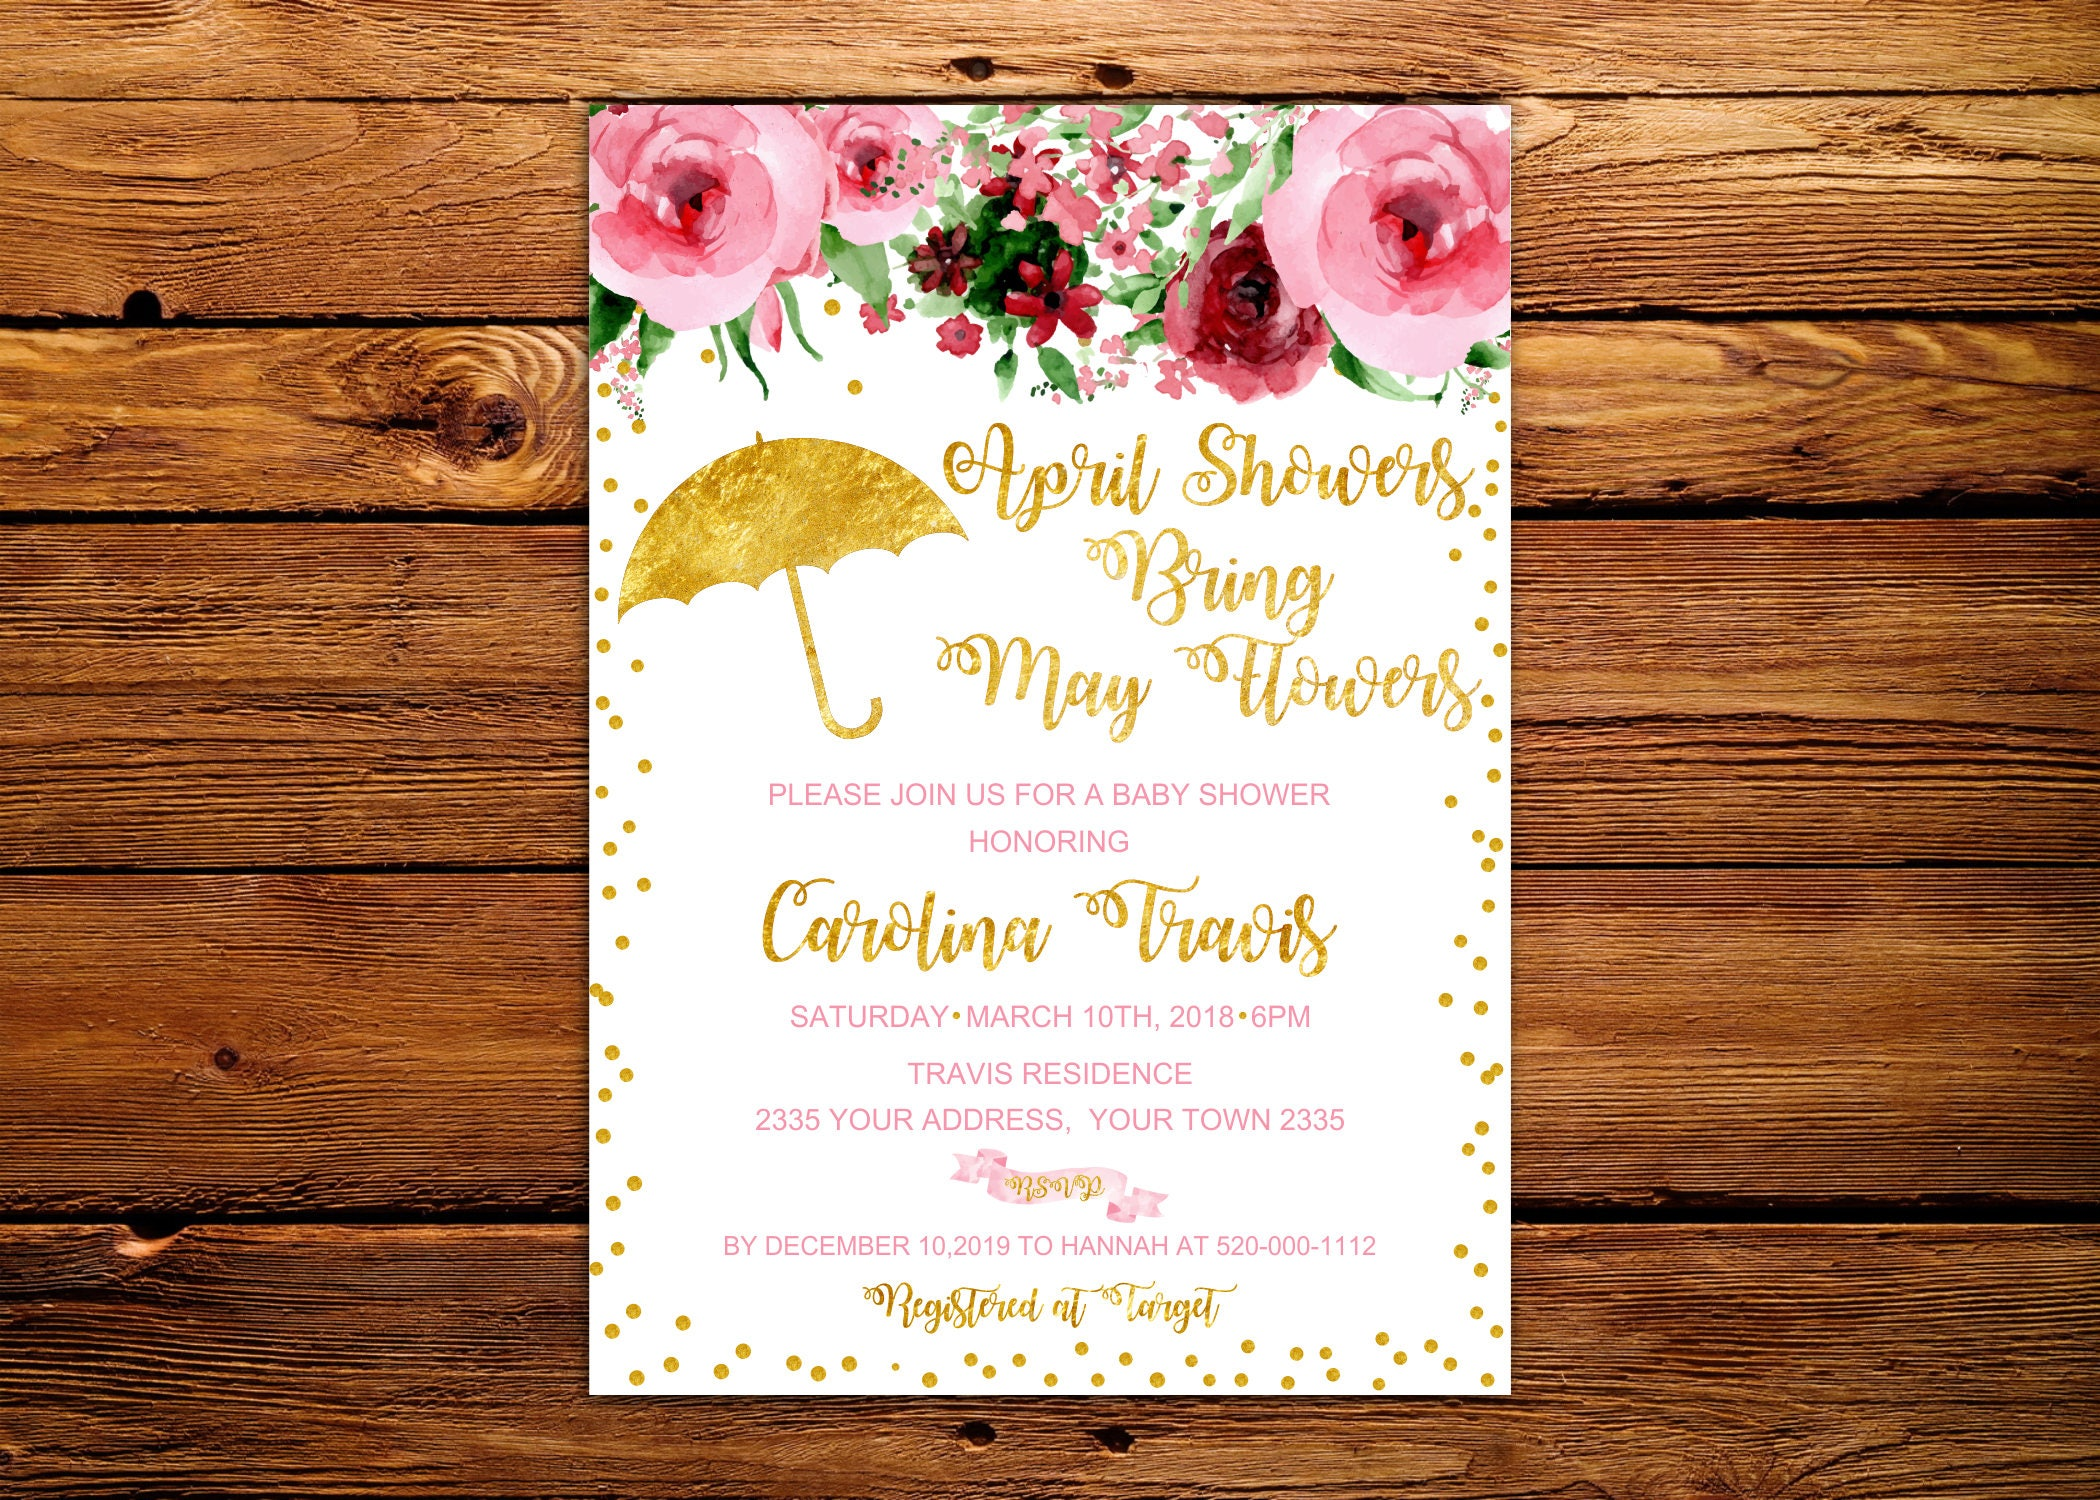 April showers bring may flowers baby shower invitation etsy zoom filmwisefo